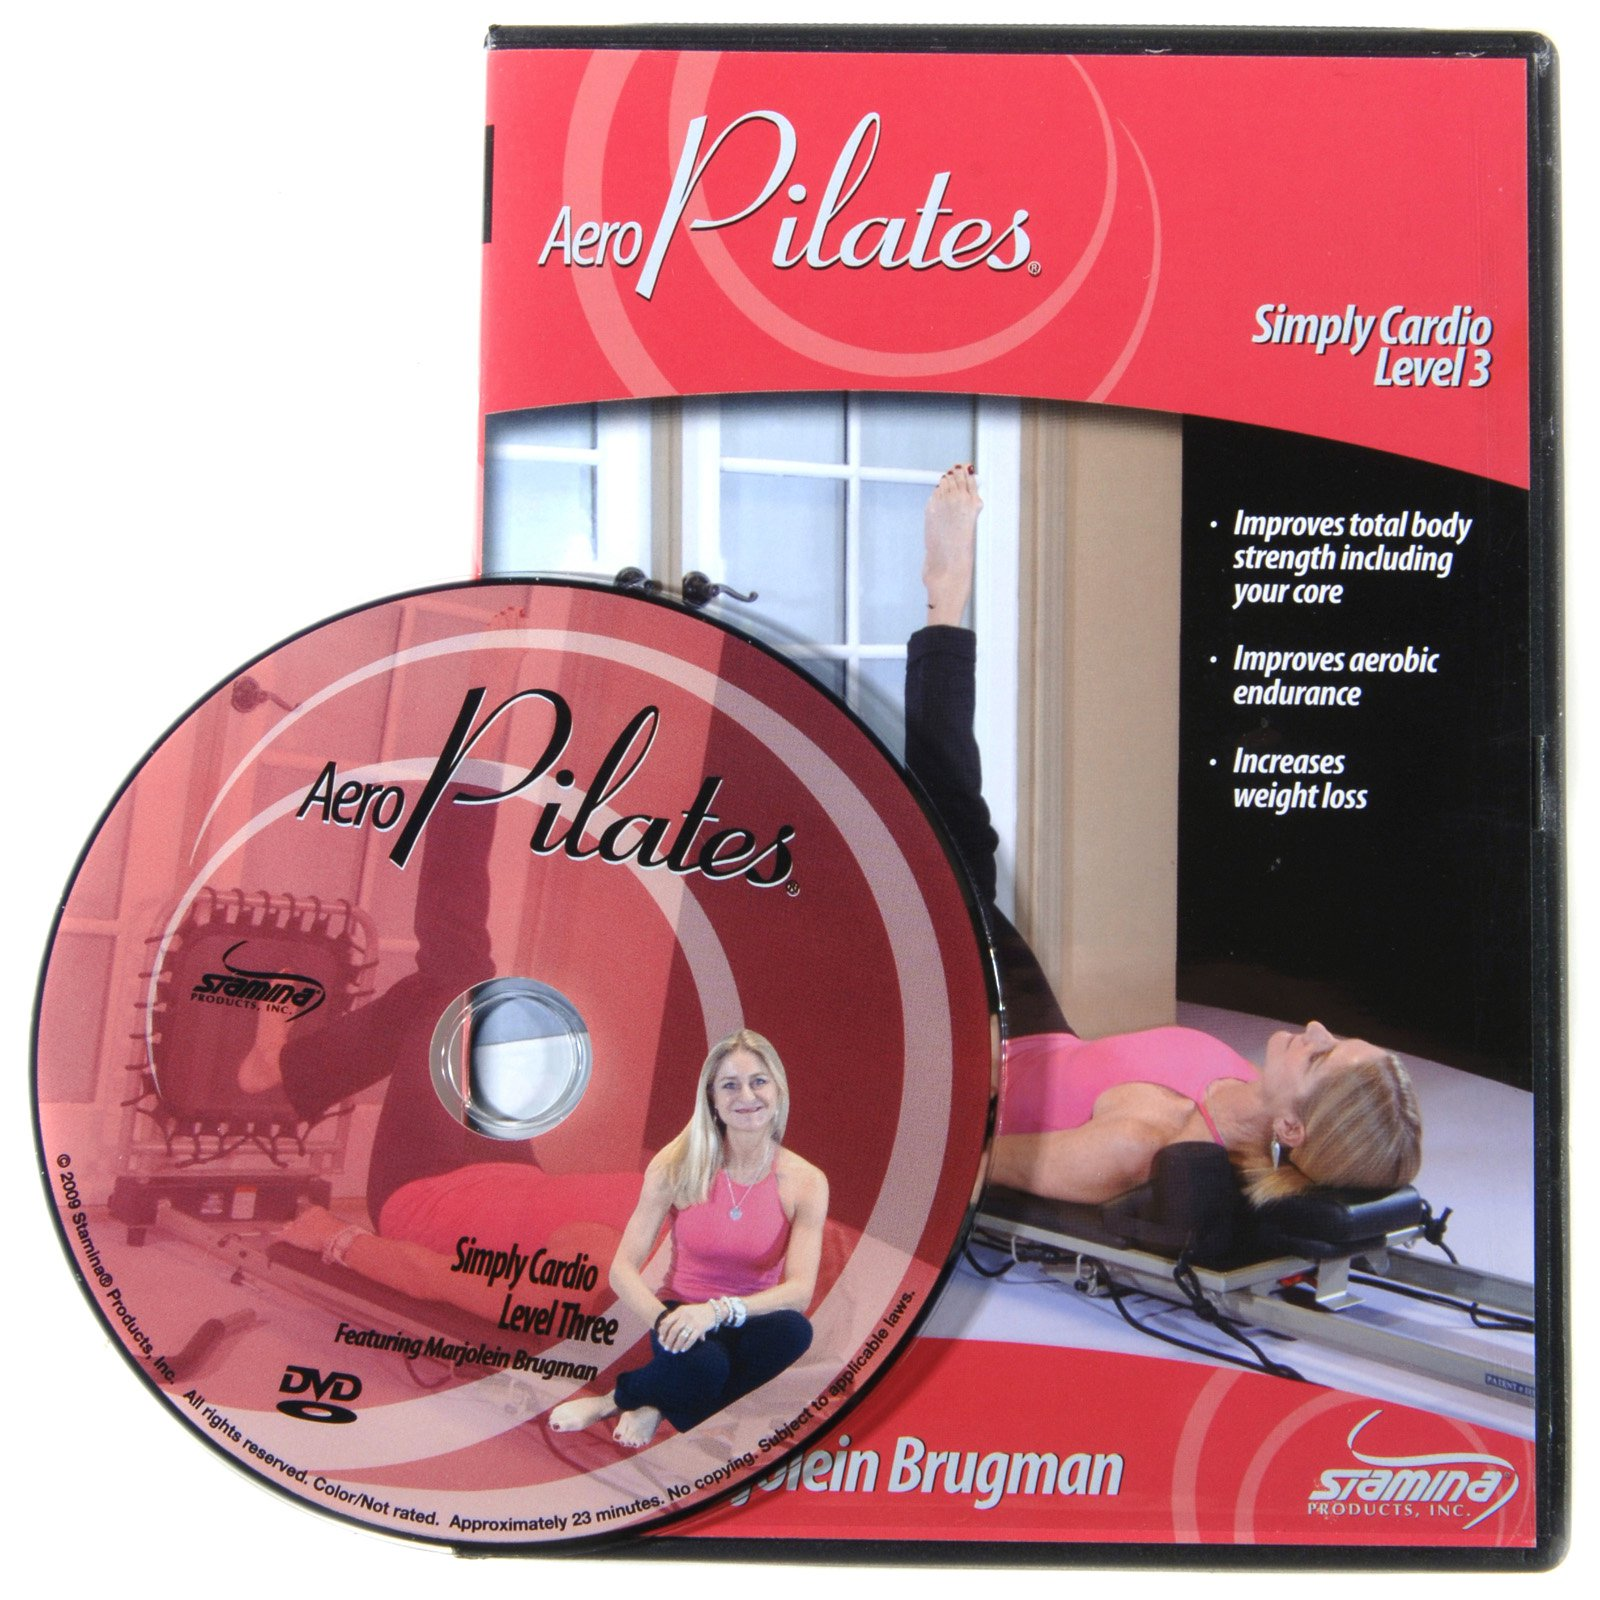 Stamina AeroPilates Level Three Simply Cardio Workout DVD with Marjolein Brugman